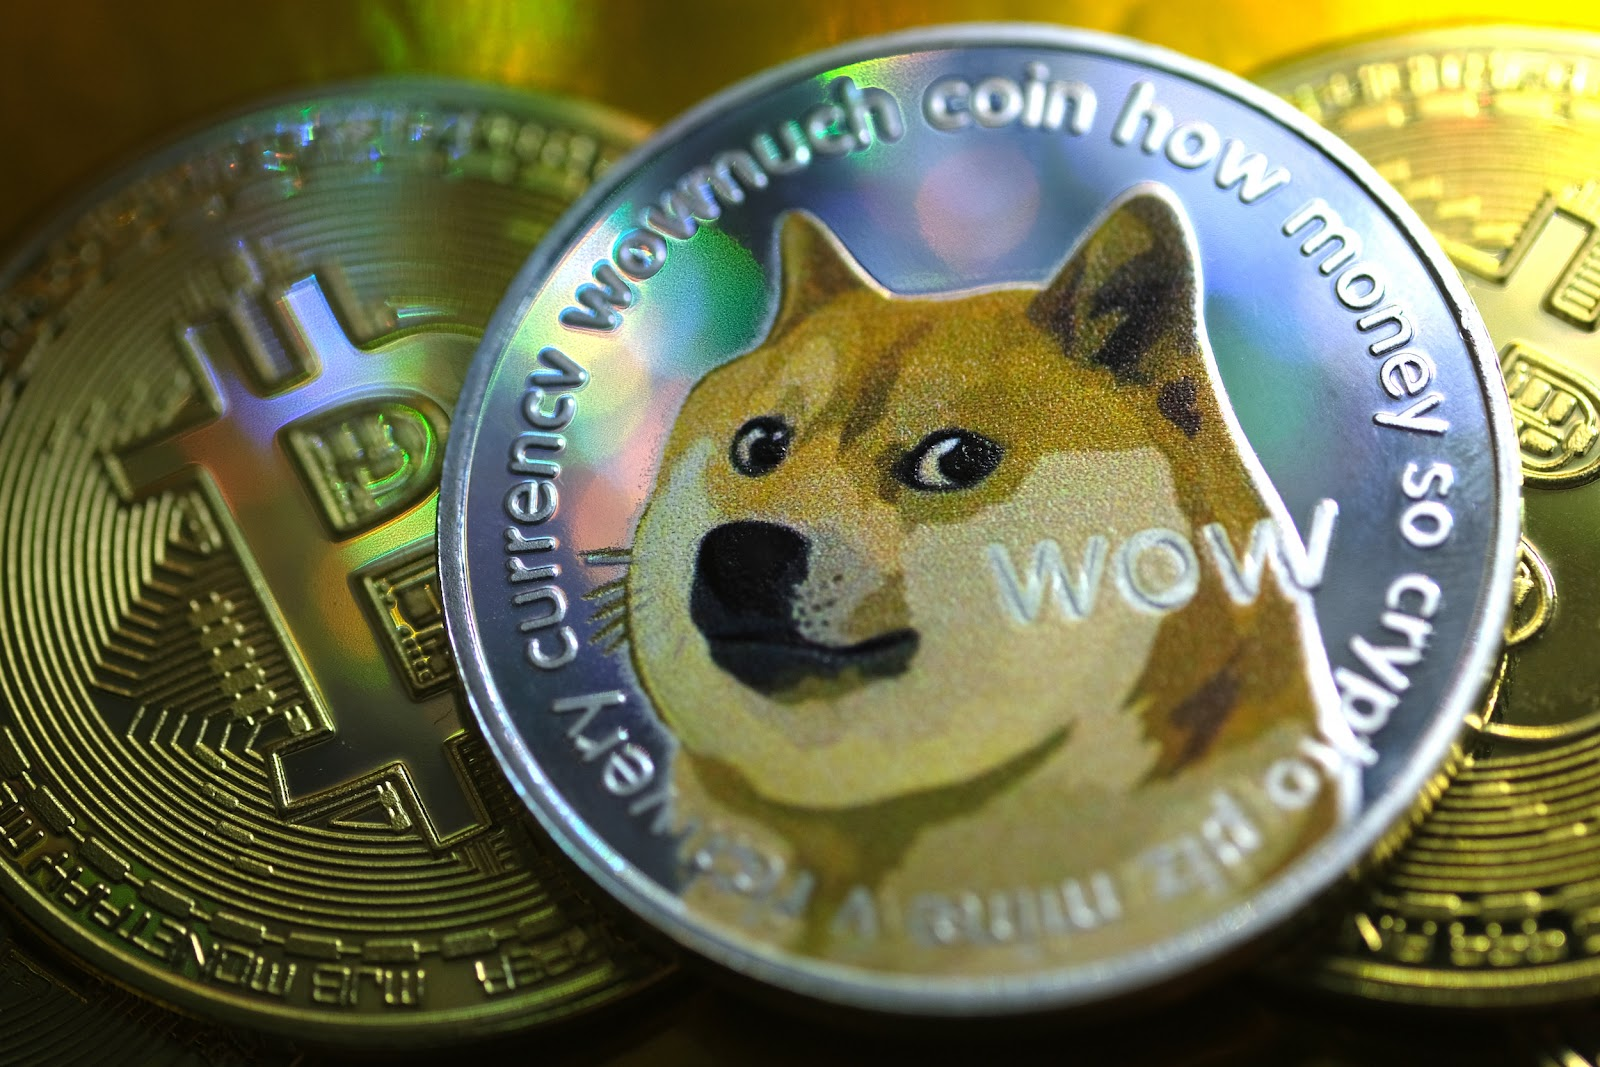 The DogeCoin cryptocurrency is gaining popularity very fast